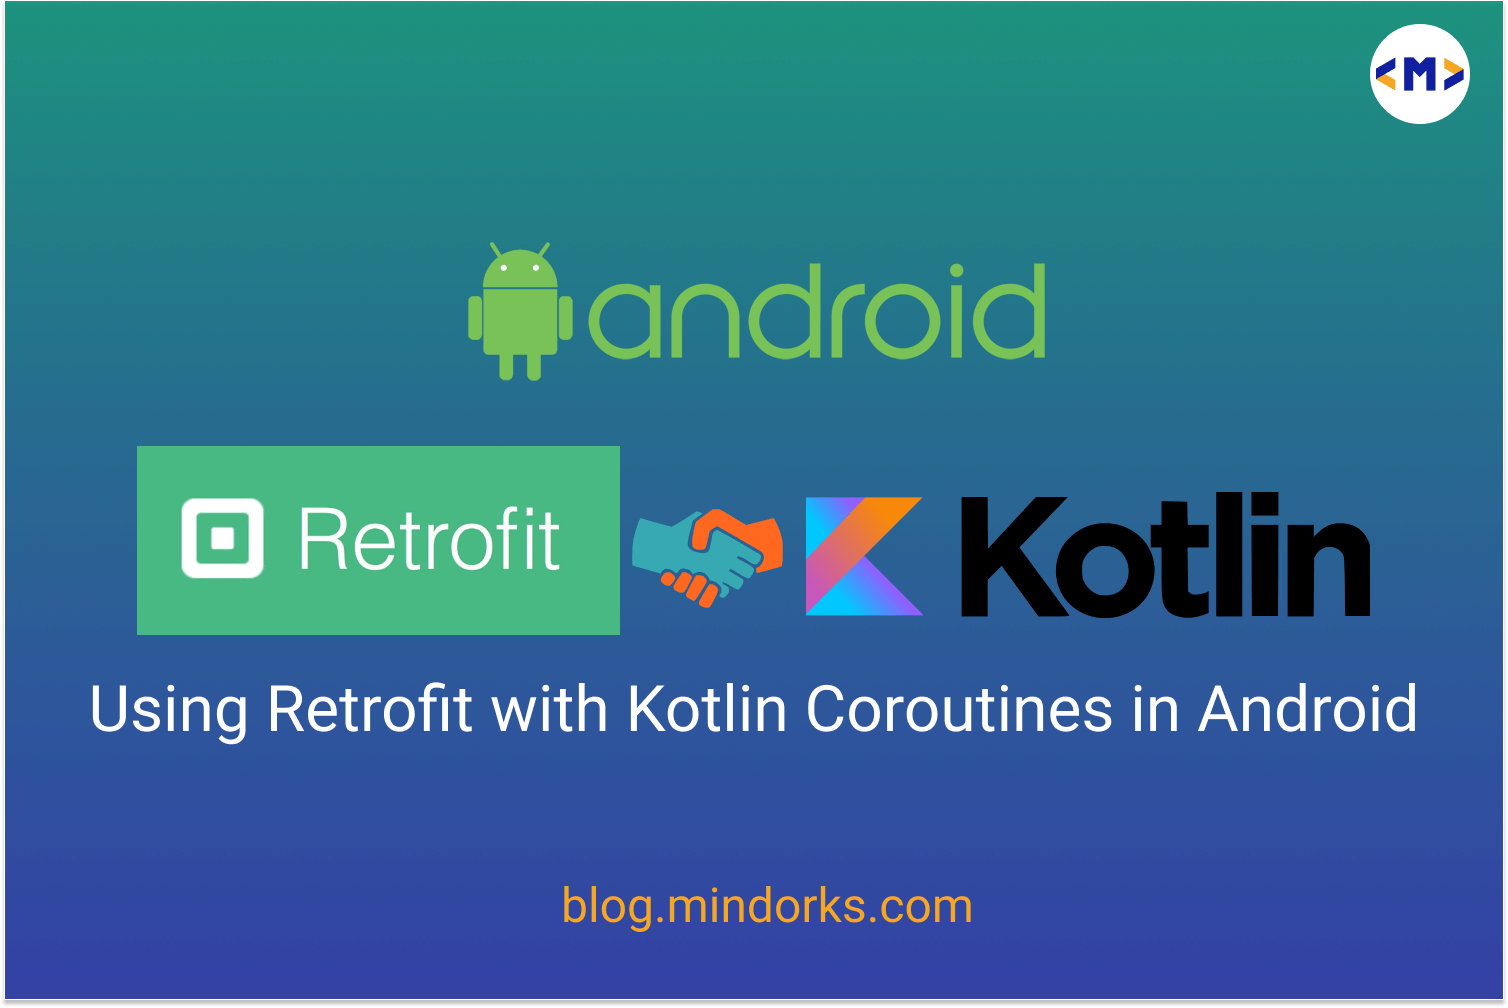 Using Retrofit with Kotlin Coroutines in Android